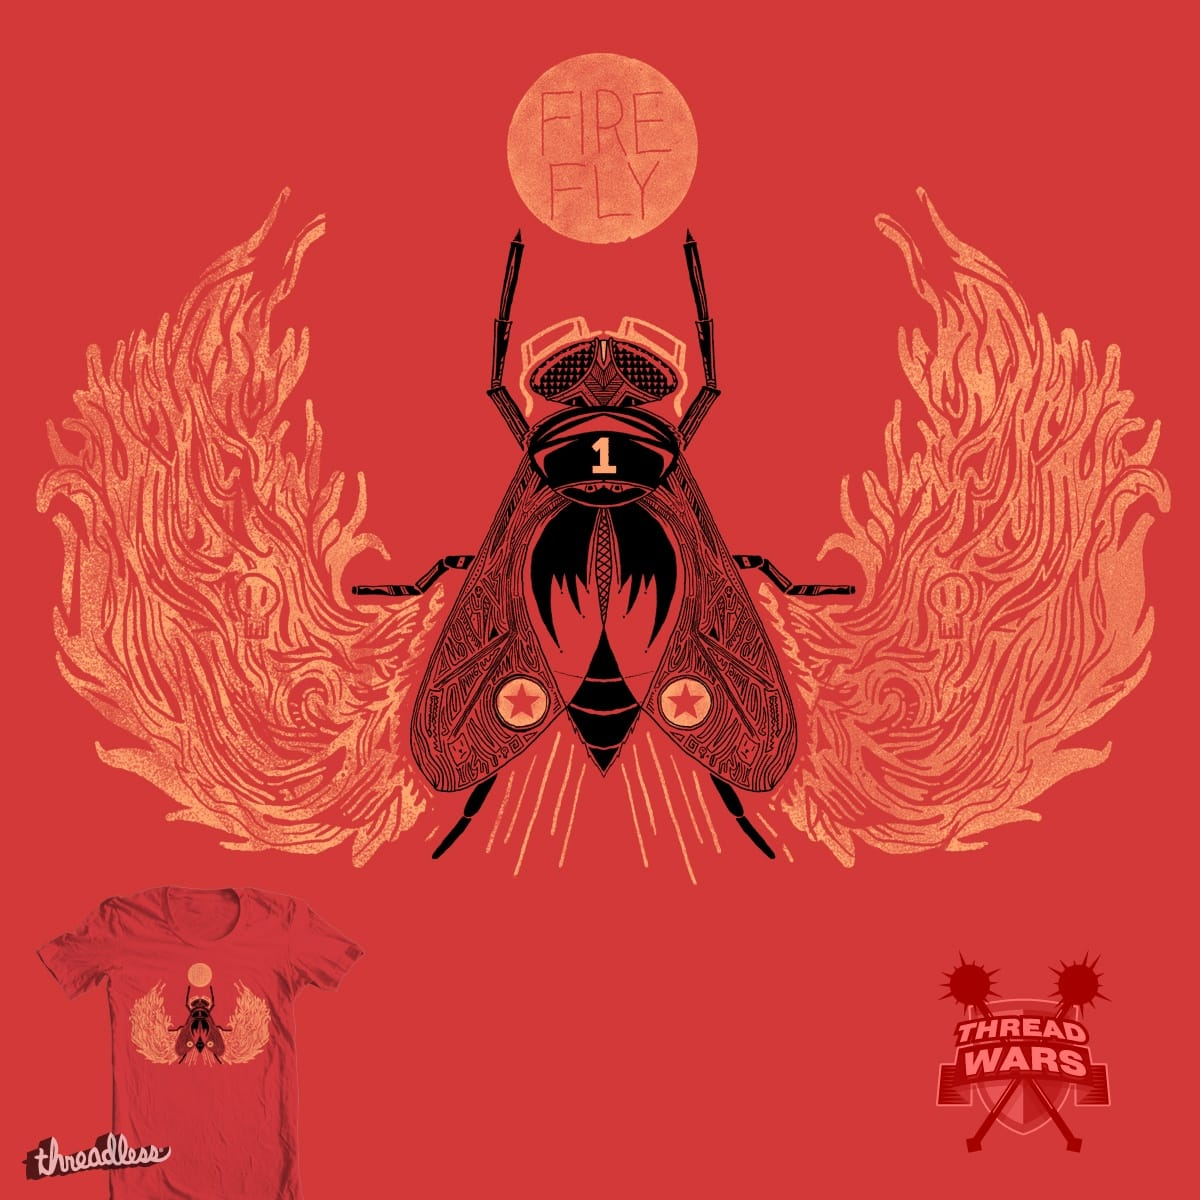 Fire Fly by Steger on Threadless